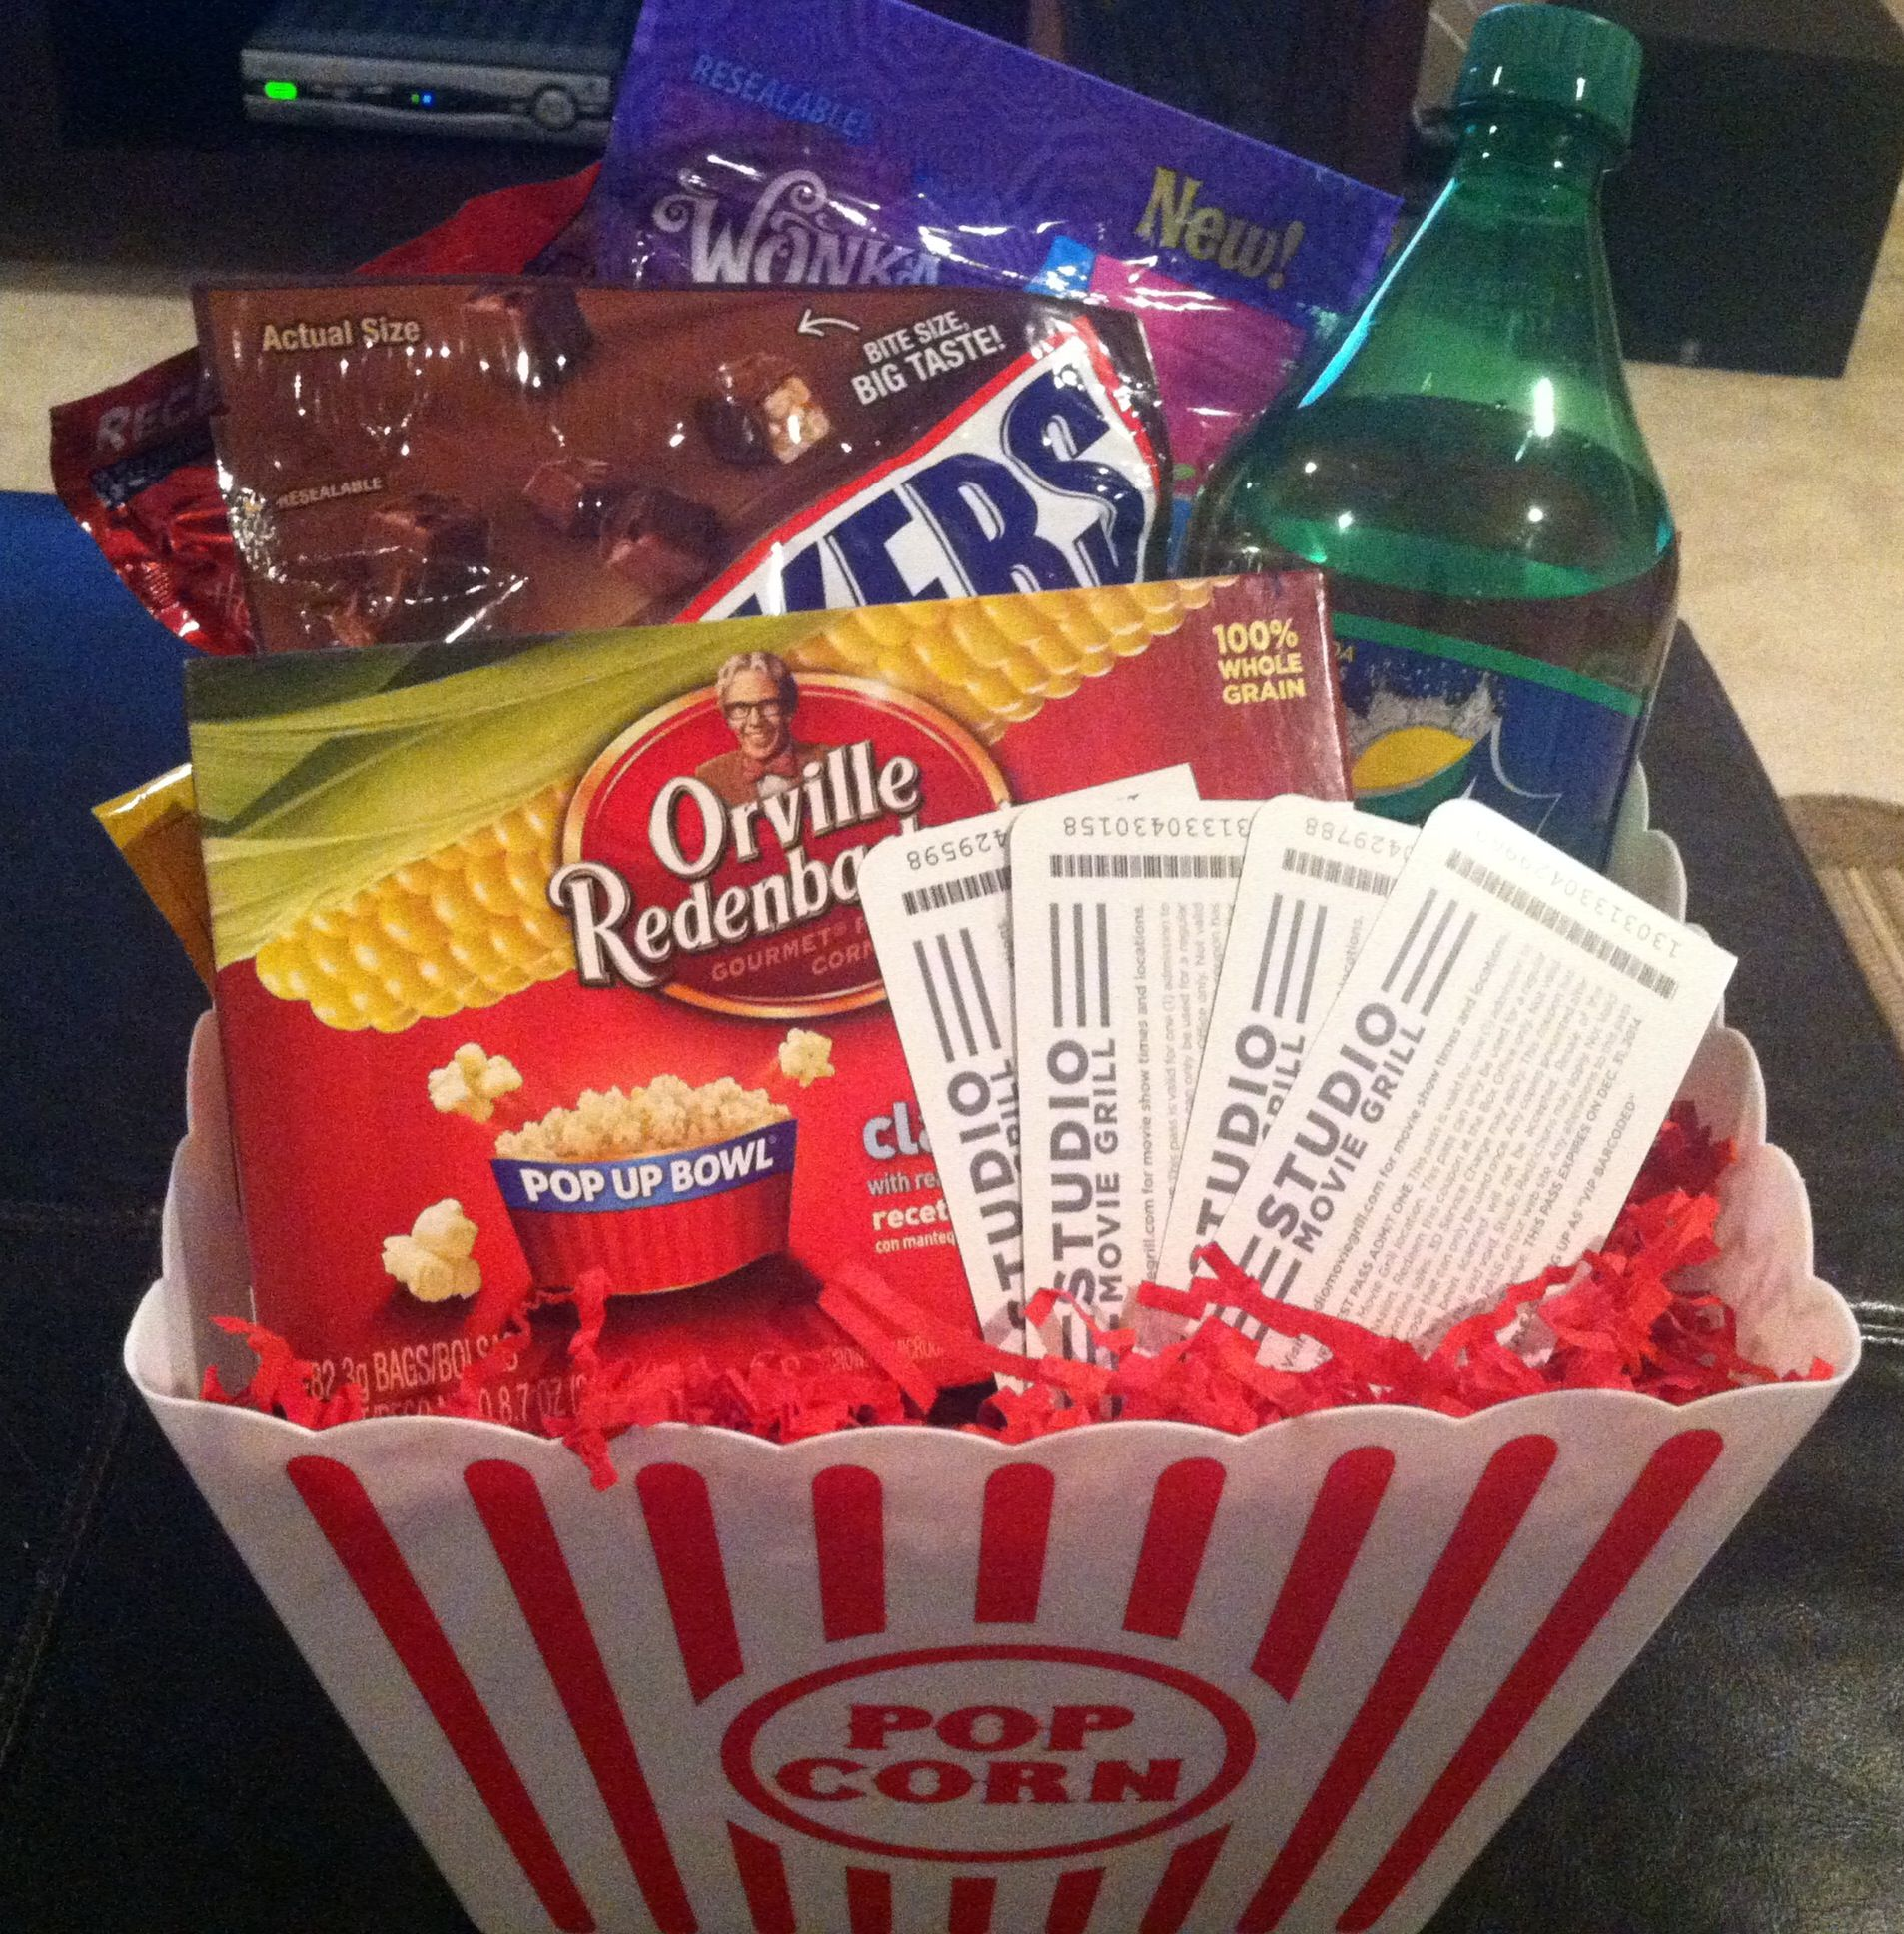 Tenant Lease Renewal Movie Gift Basket Snacks Popcorn 1 Liter